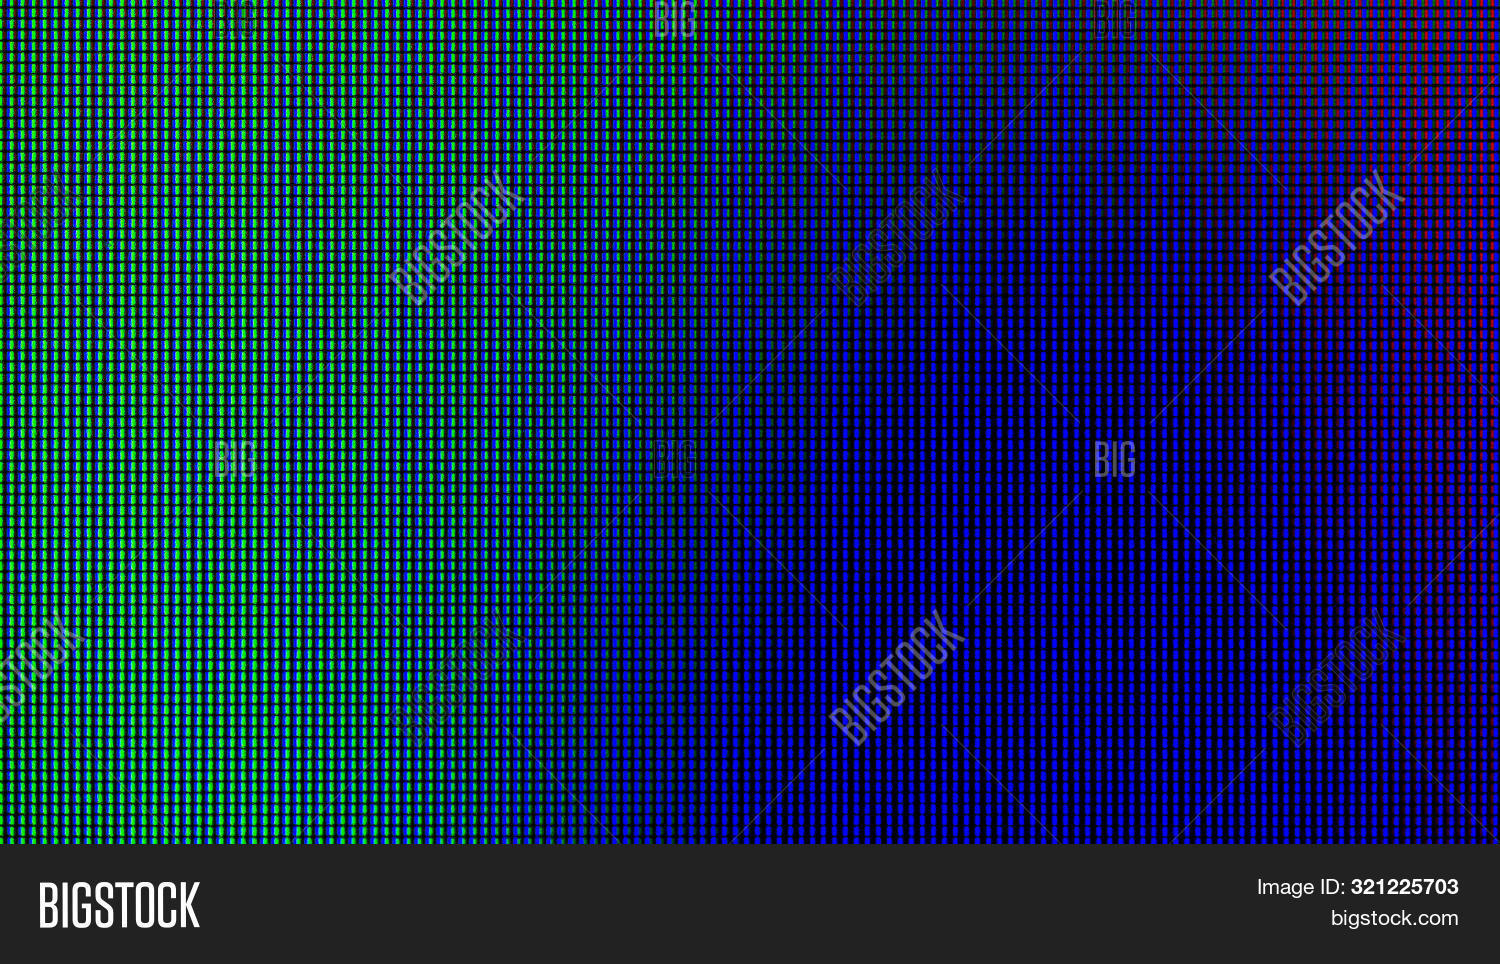 abstract-background,abstract-design,abstract-template,background,bright,brightly,building,bulb,business,closeup,cold,color-abstract,computer,concept,decoration,digital,diode,electrical,electricity,electronic,element,emission,emitting,energy,environmental,equipment,glowing,illuminated,isolated,lamp,led,led-abstract,light,light-abstract,lighting,modern-abstract,monitor,neon,panel,resourceful,saving,screen,seamless,shape,simplicity,strip,technology,transparent,warehouse